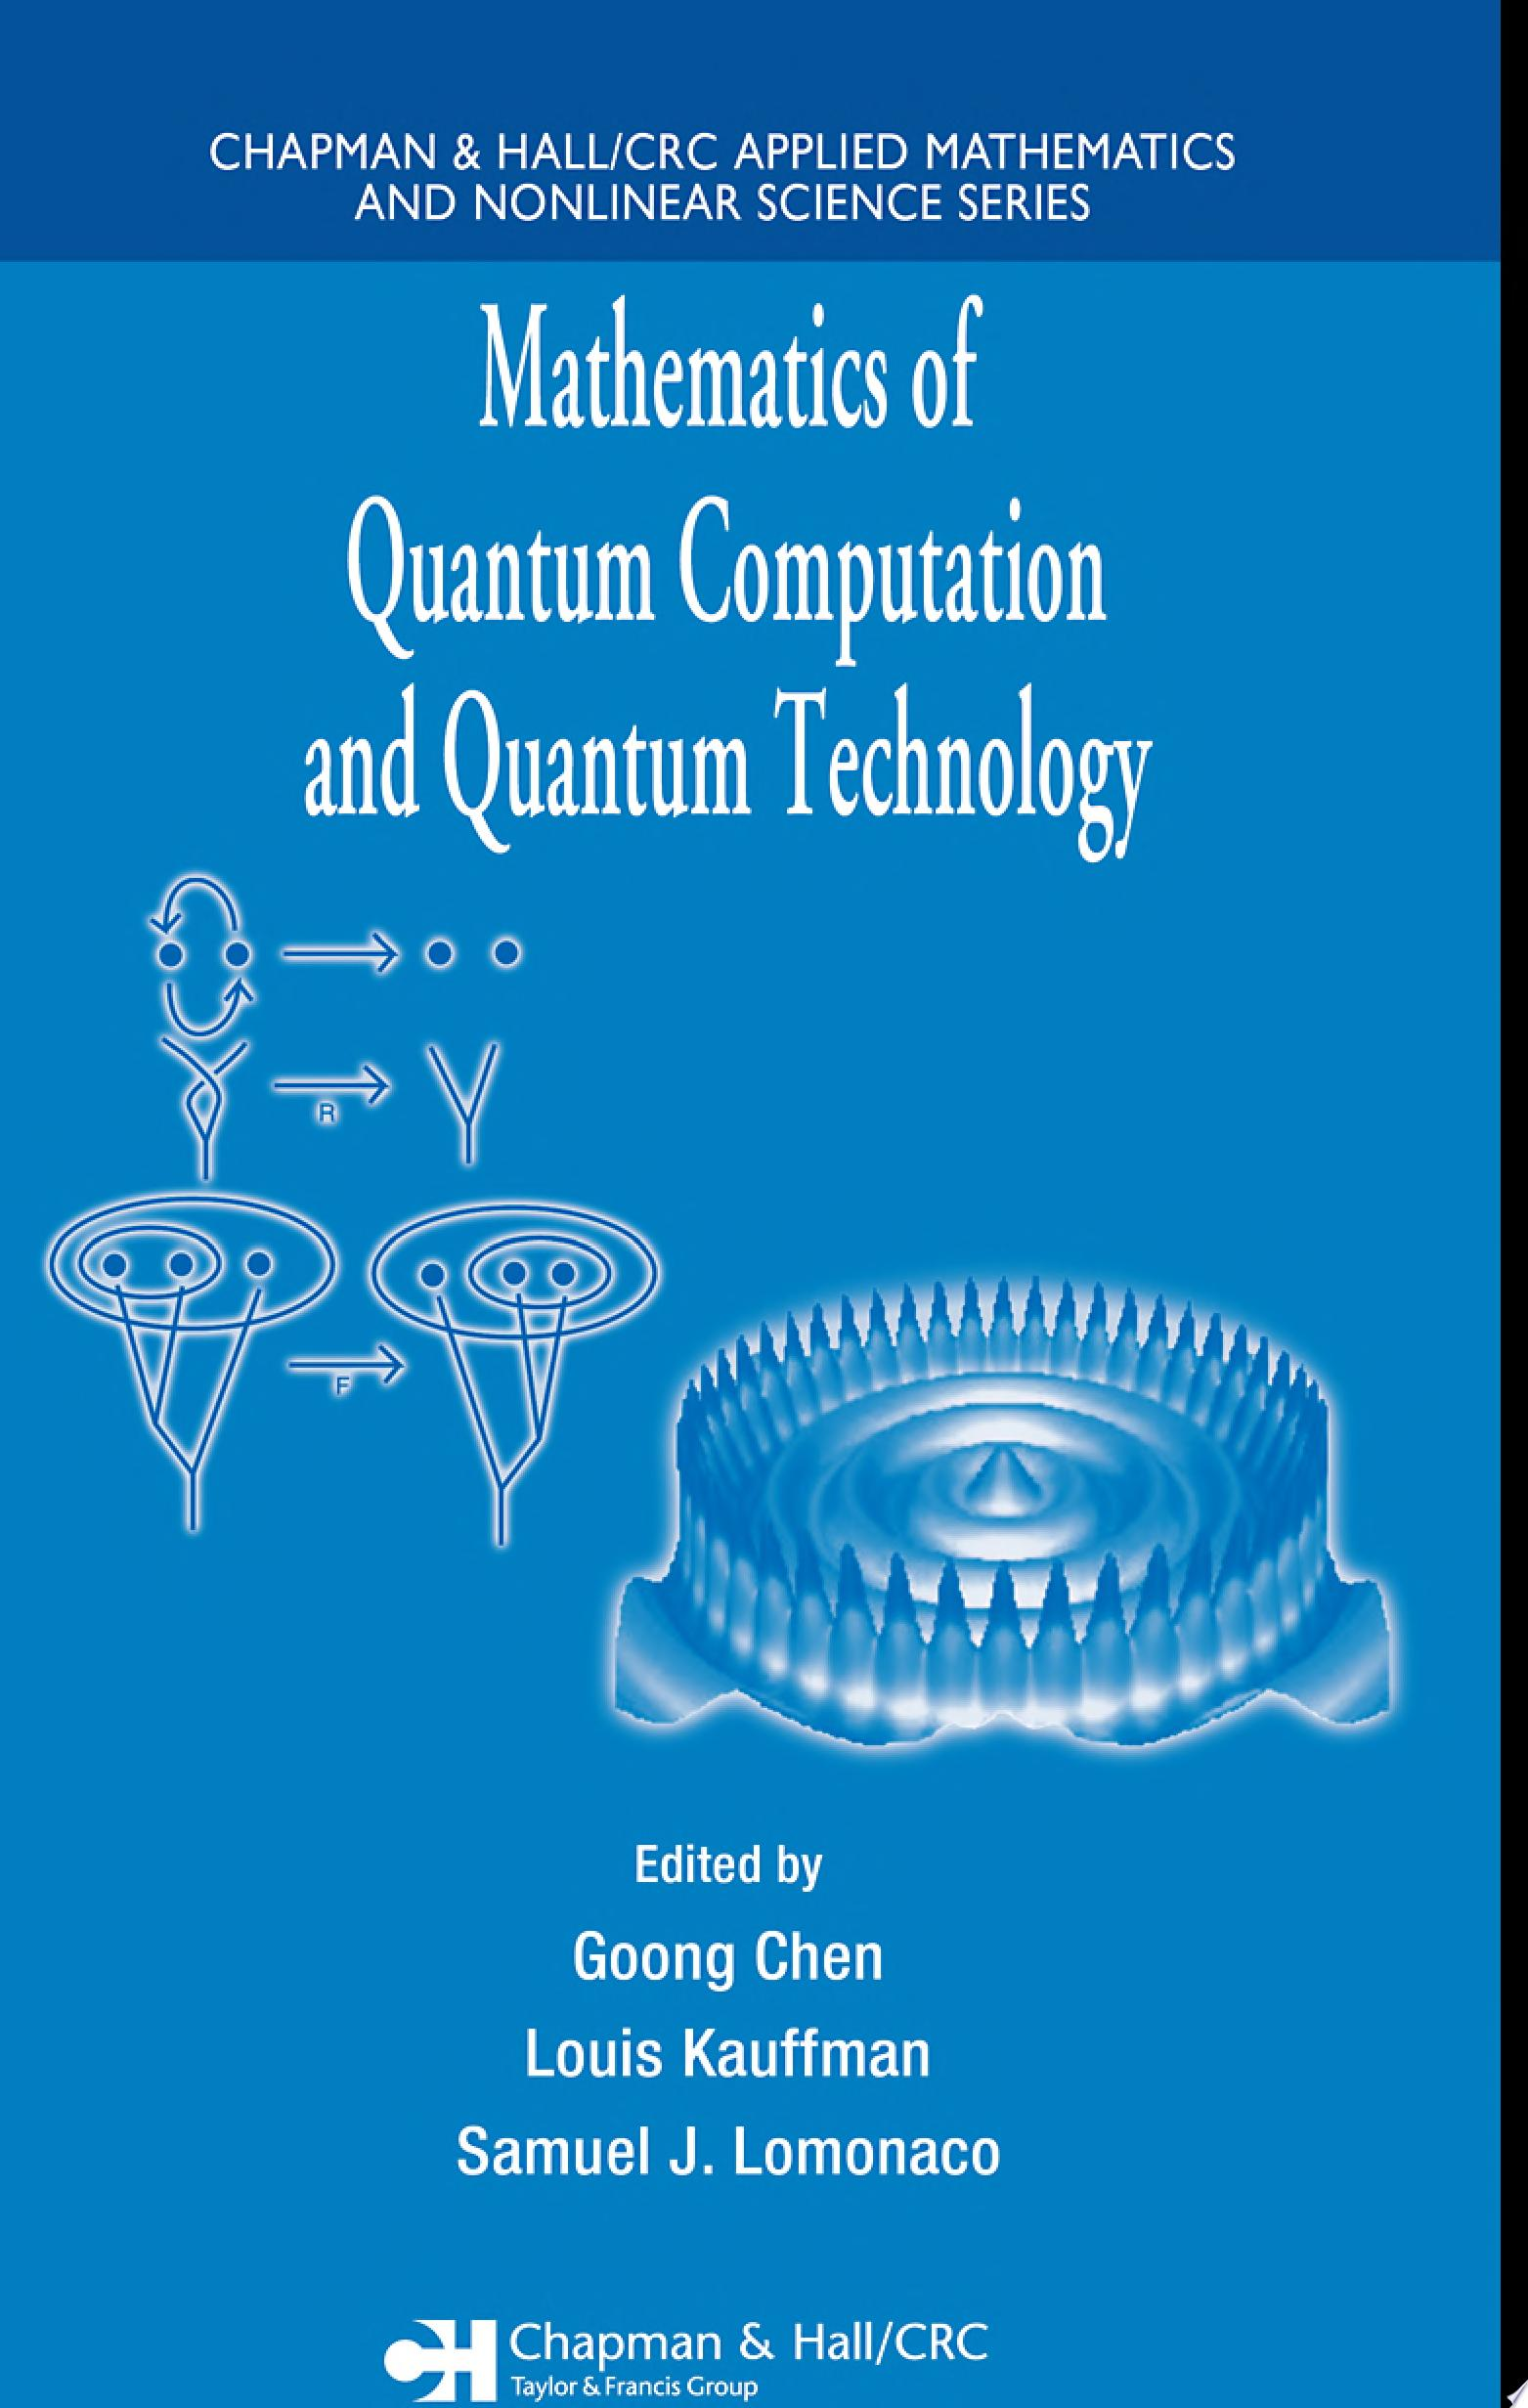 Mathematics of Quantum Computation and Quantum Technology